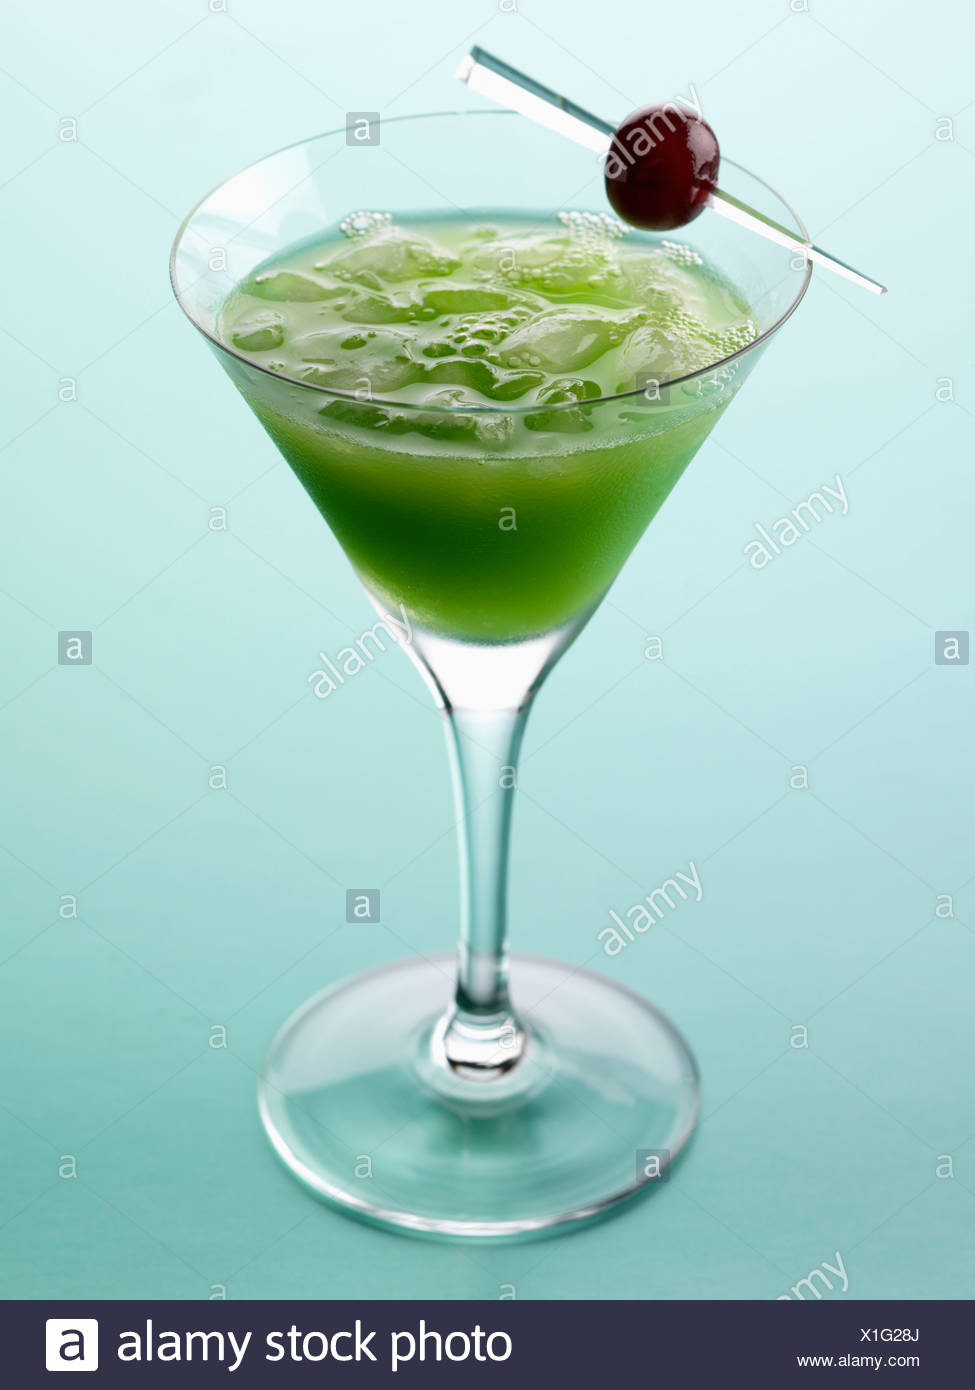 Curacao food stock photos curacao food stock images alamy for Cocktail get 27